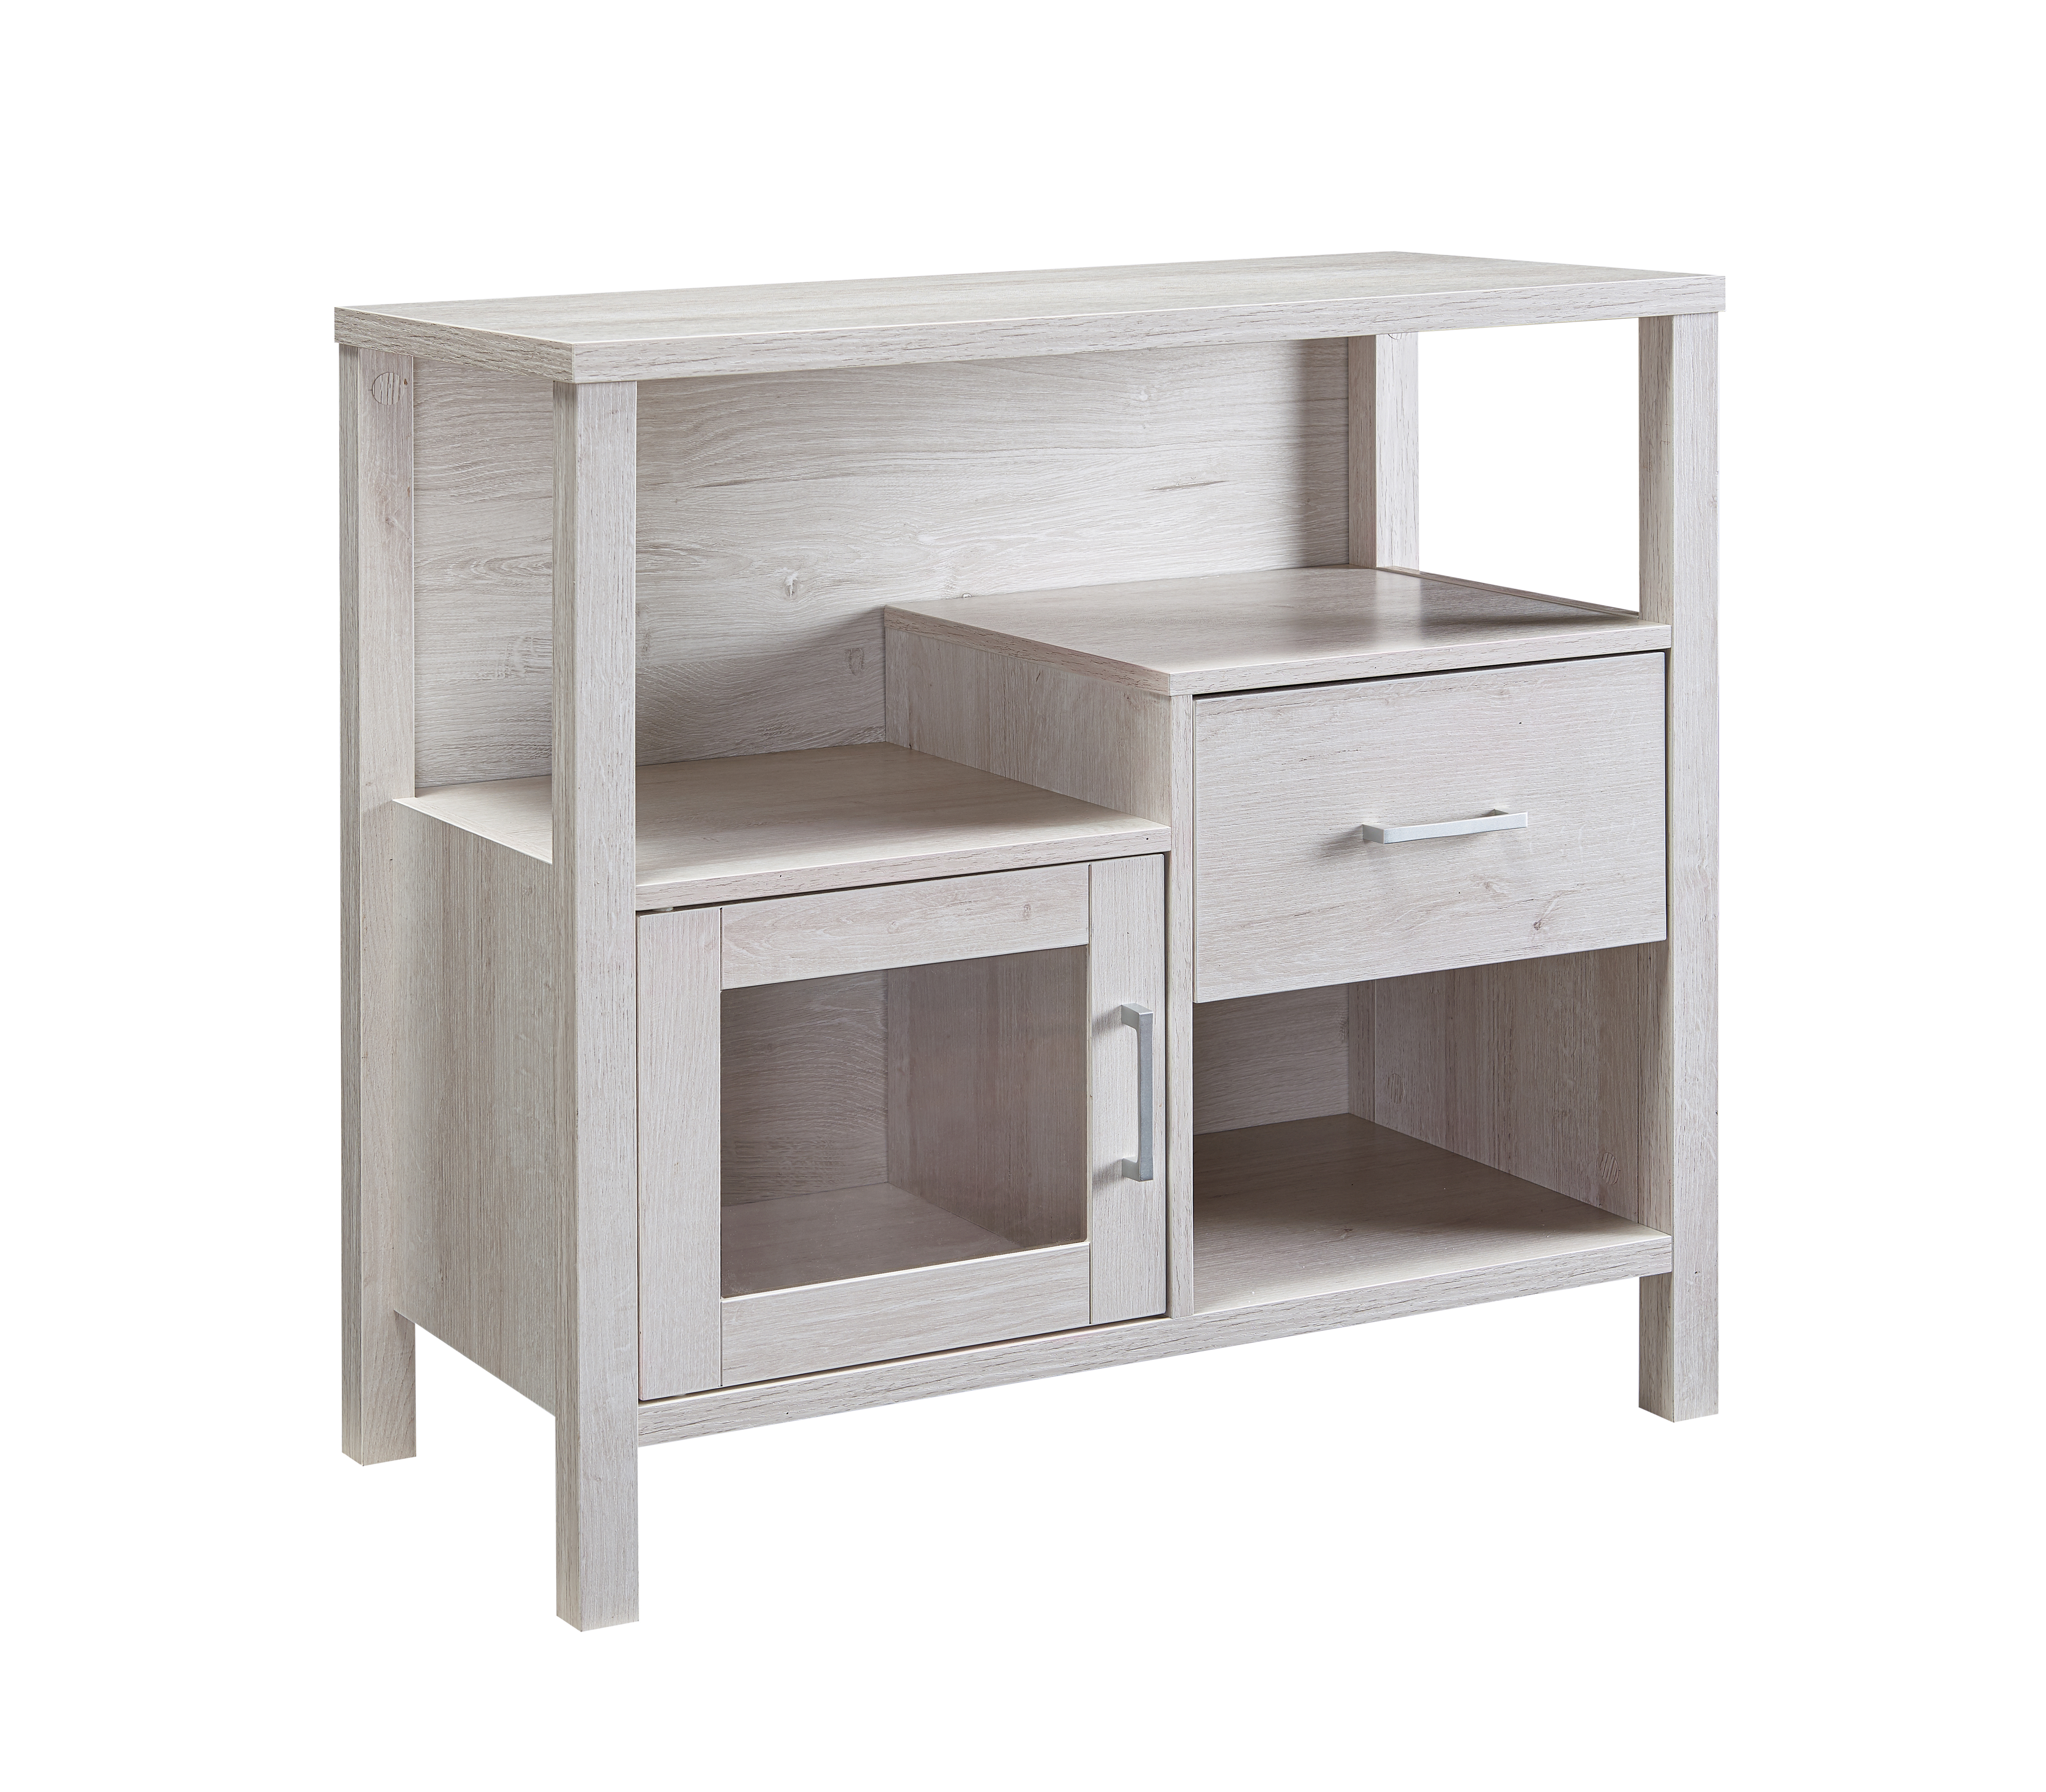 STORAGE CABINET - WHITE OAK